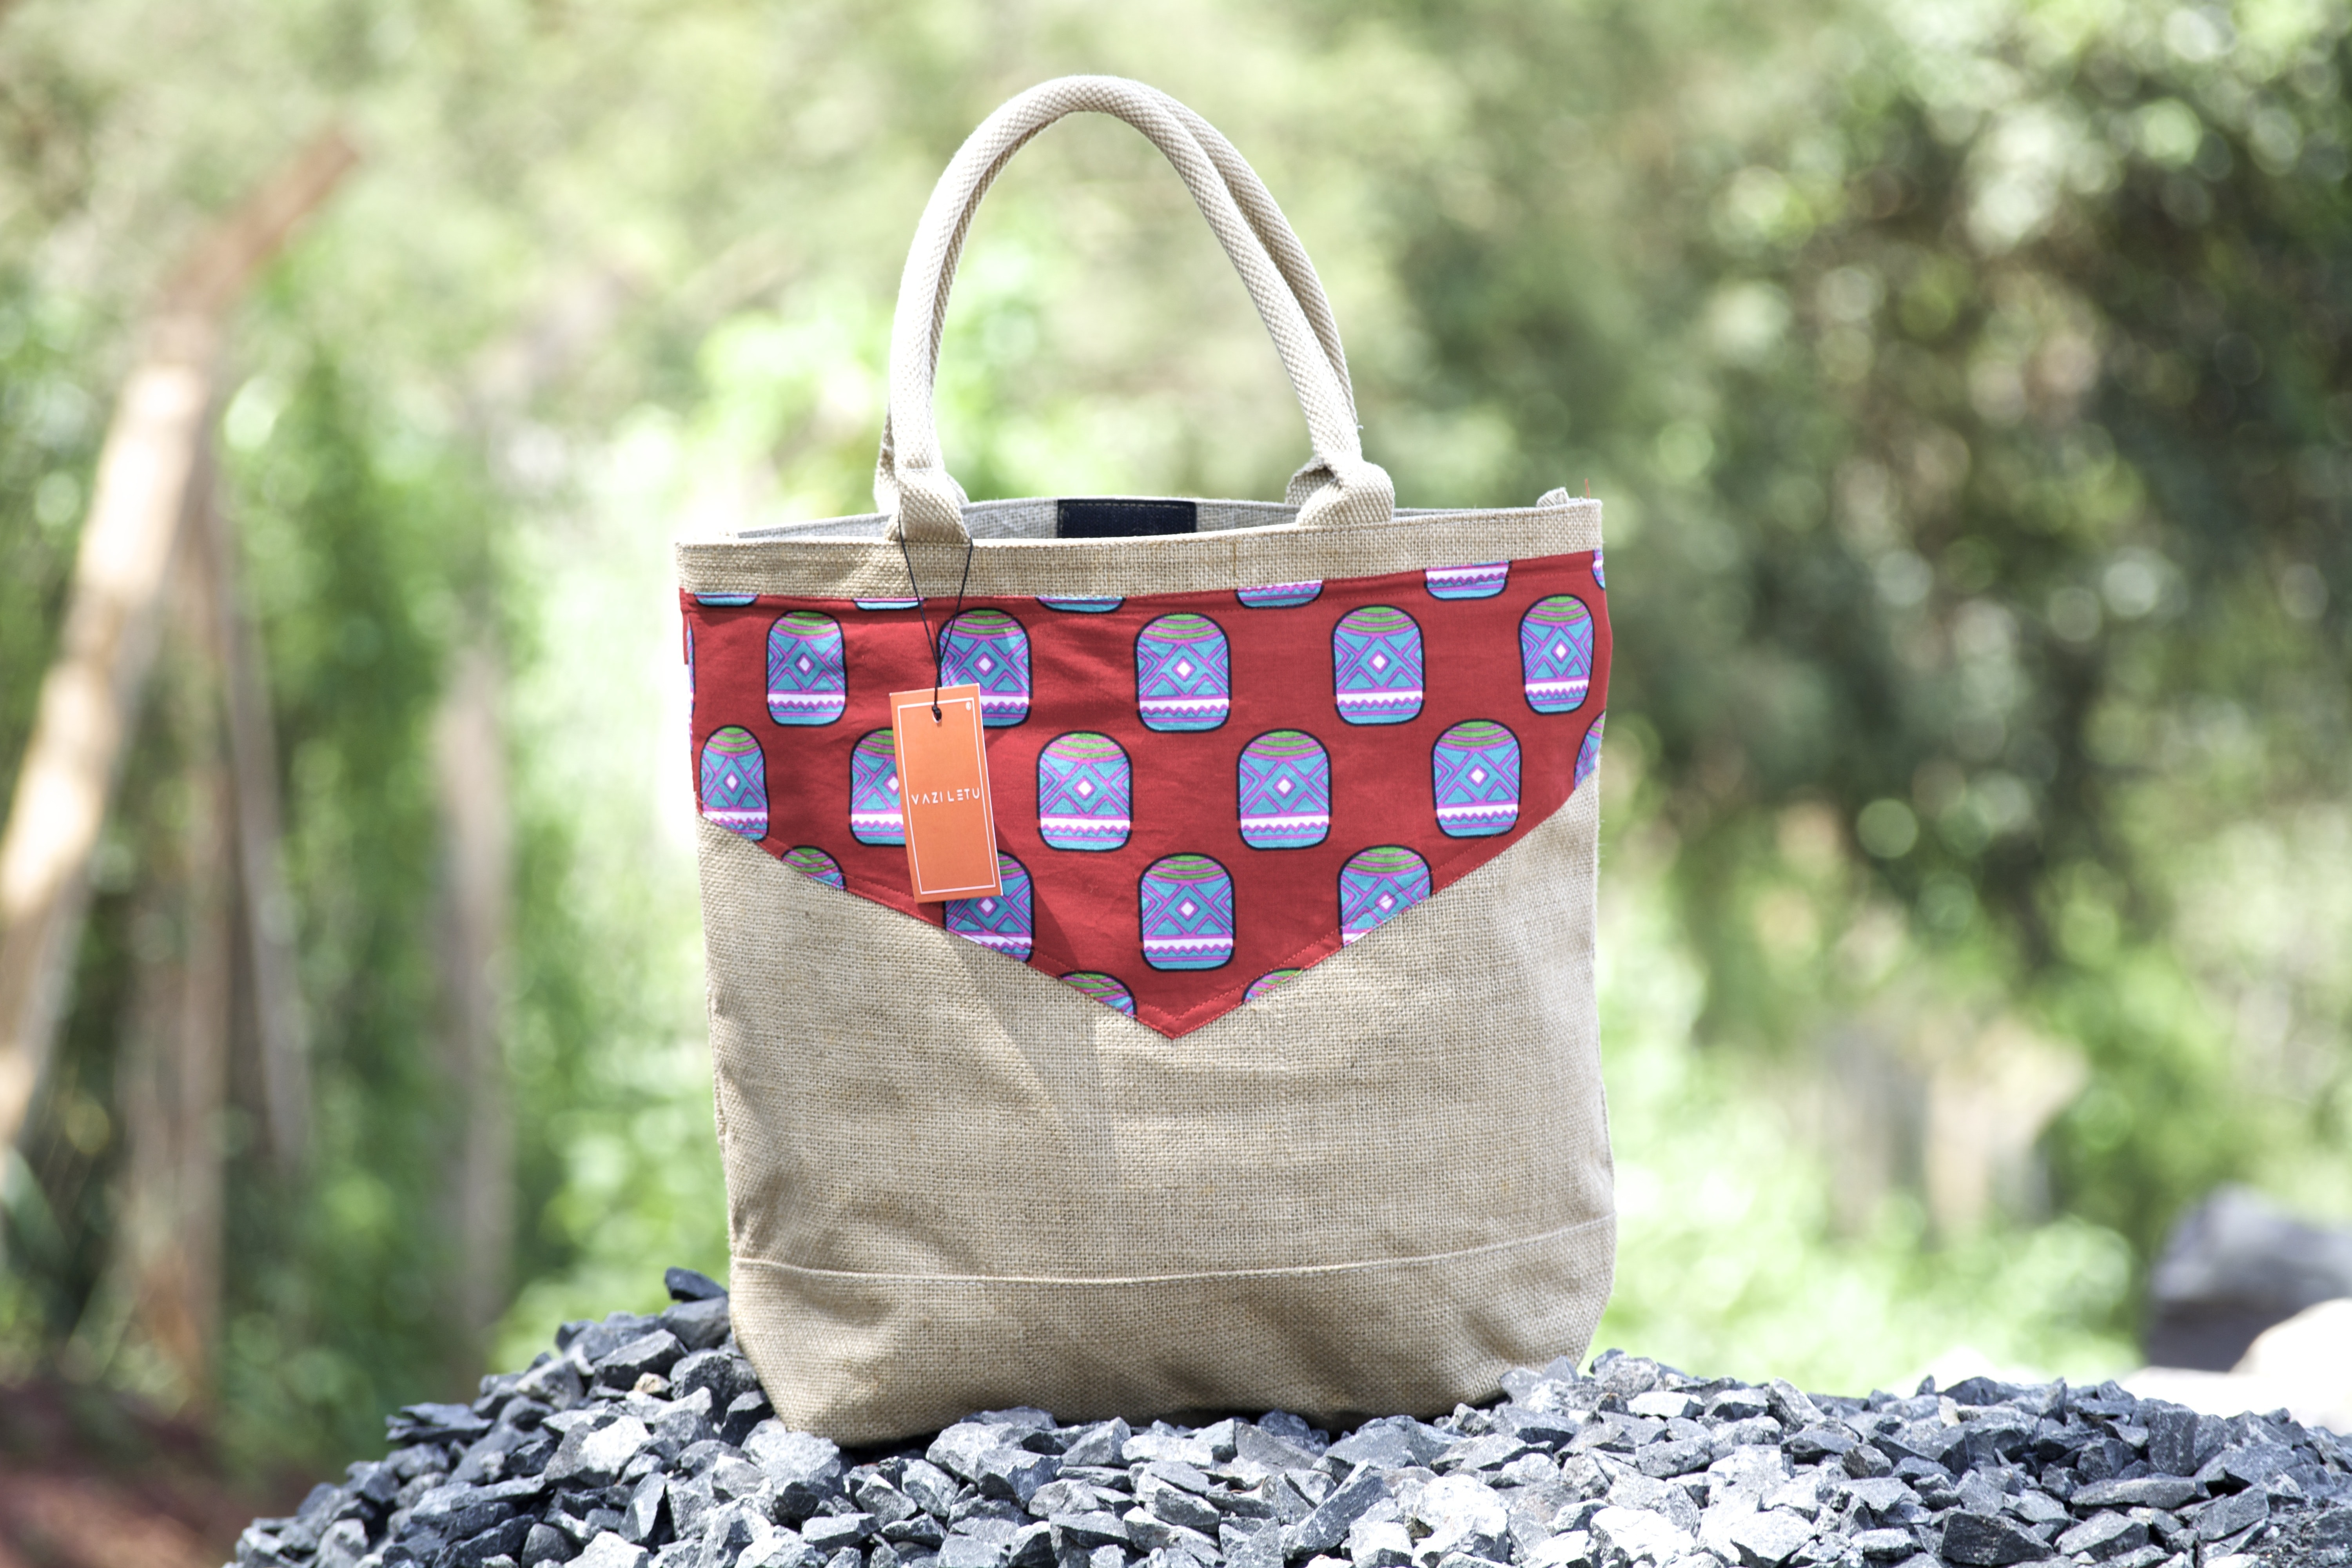 women's brown and red leather tote bag on top of gravel